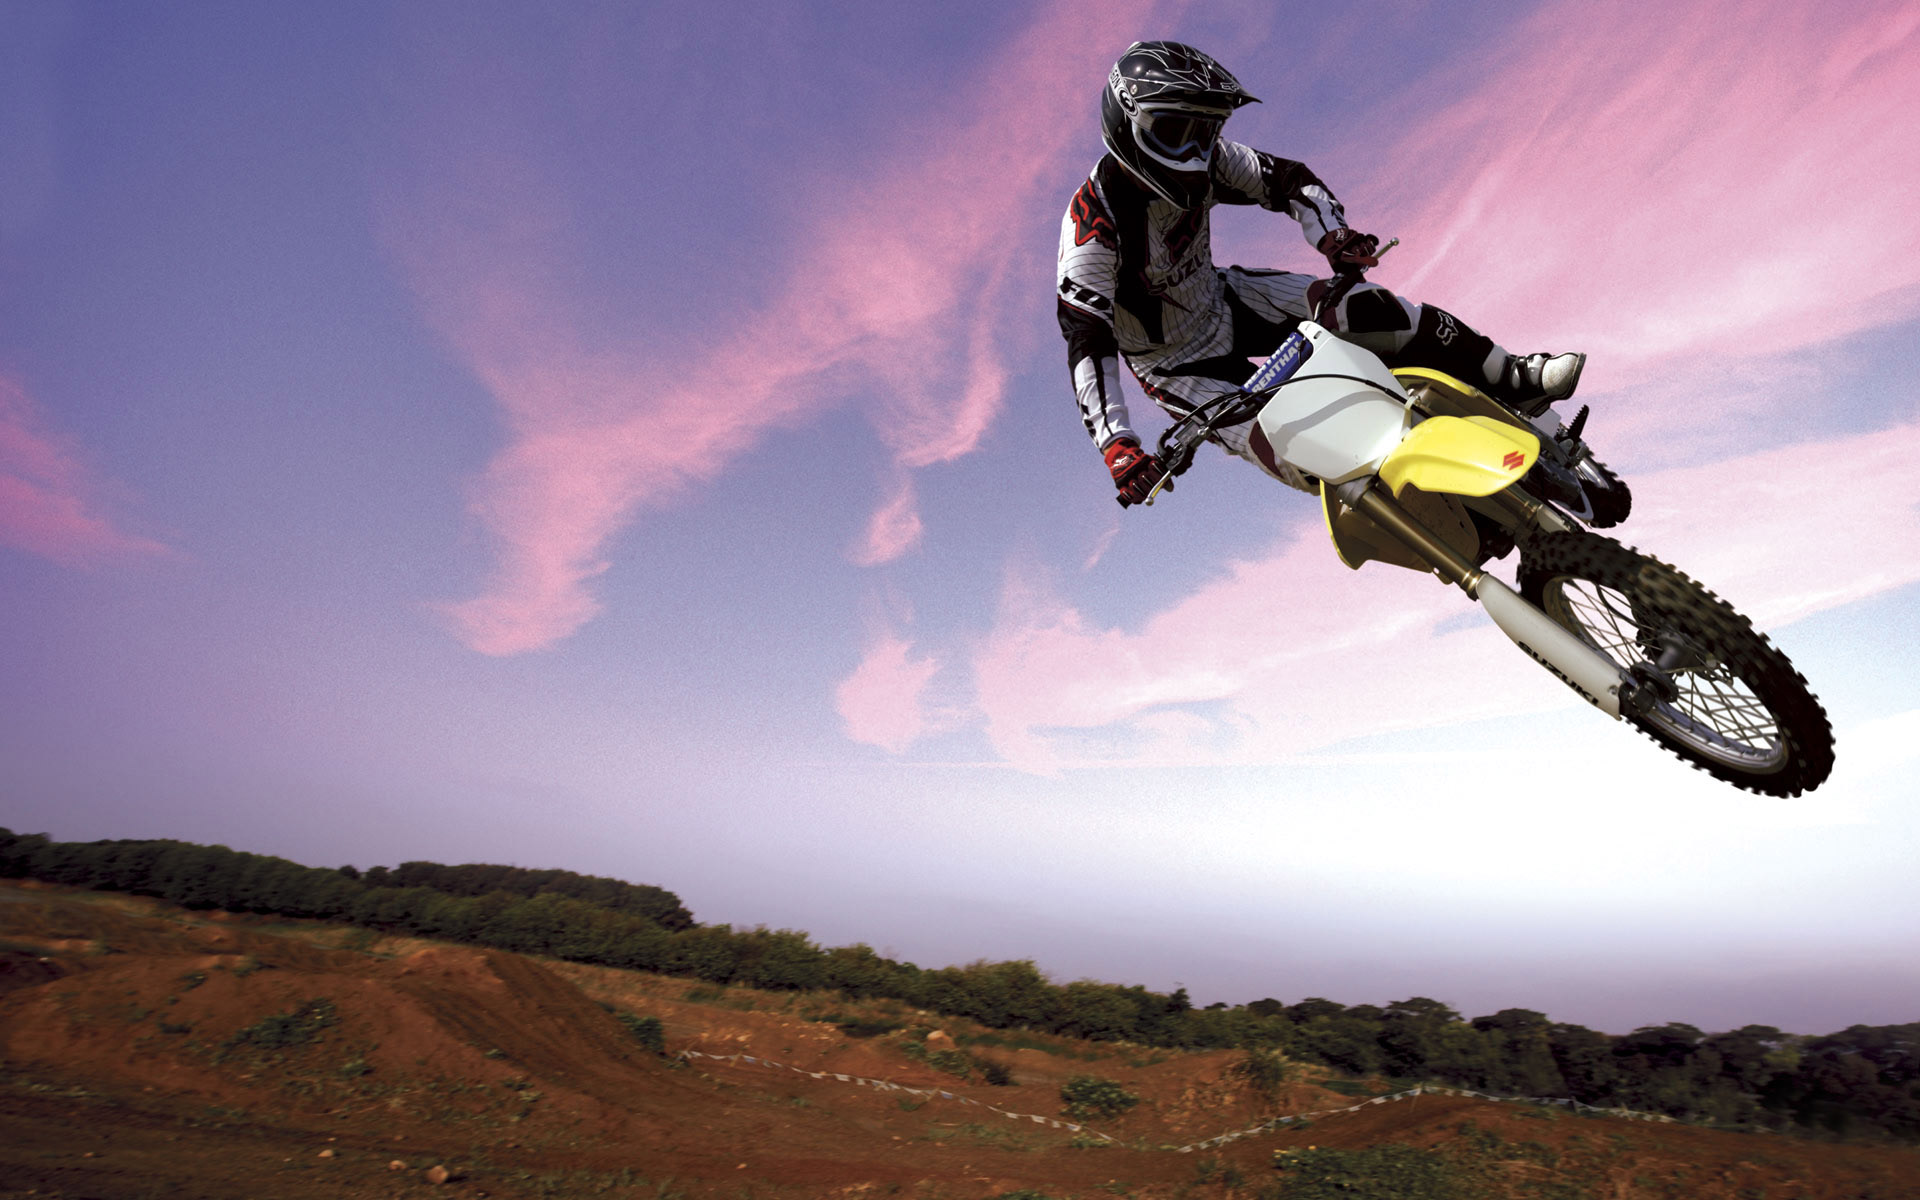 motocross-bike-in-sky-HD_wallpapers.jpg